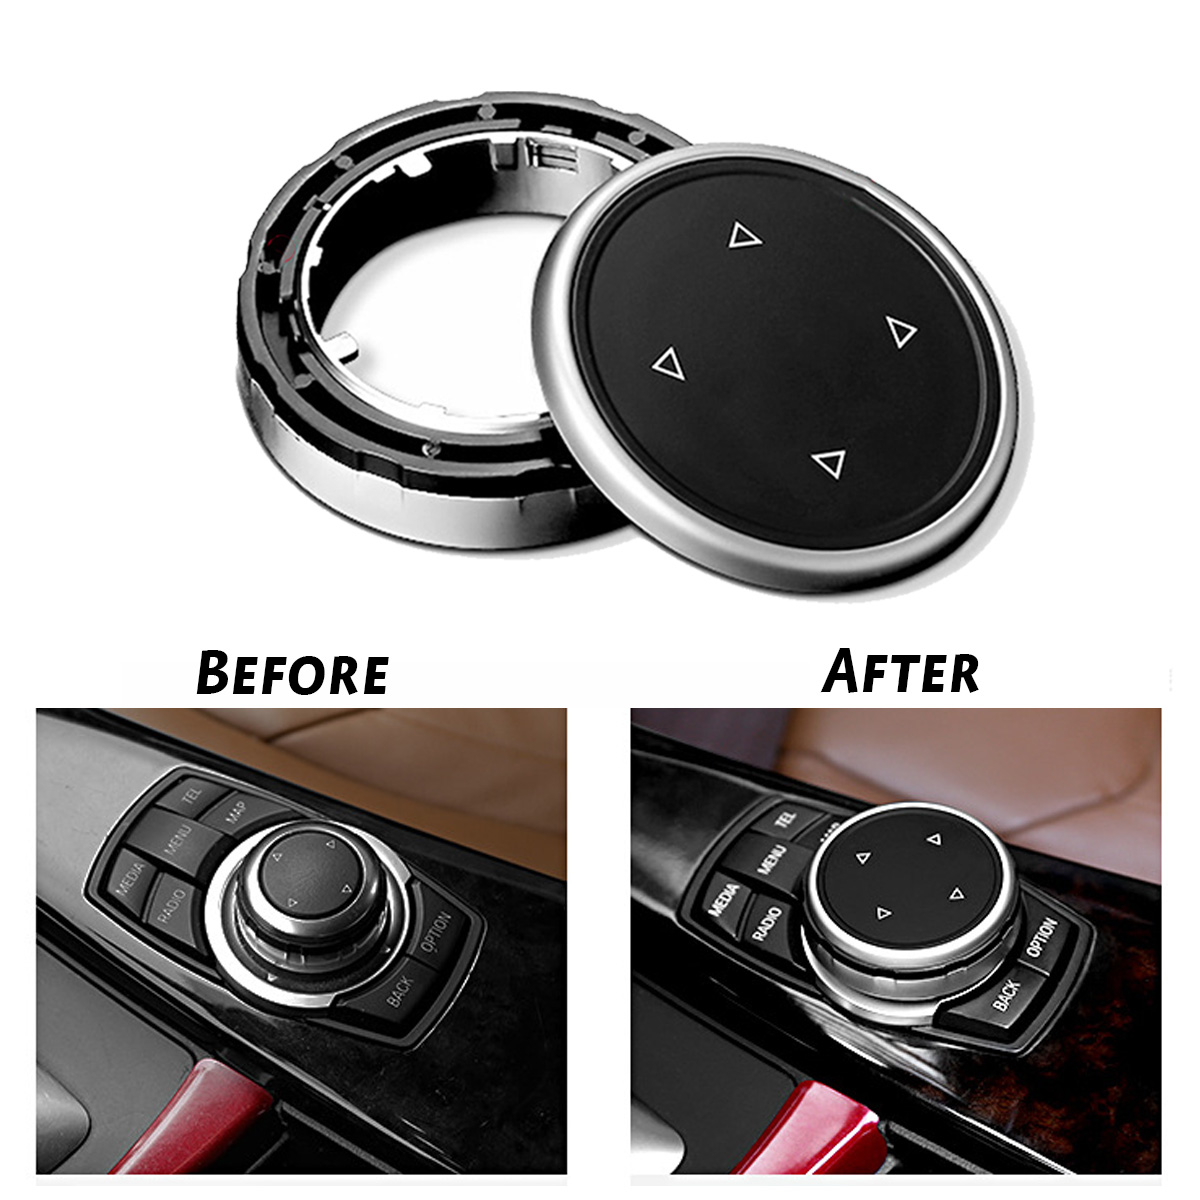 For iDrive Car Multimedia Button Cover Trim Knob <font><b>Sticker</b></font> for BMW F10 <font><b>F20</b></font> F30 3 5 Series for NBT Controller Translucent Button image